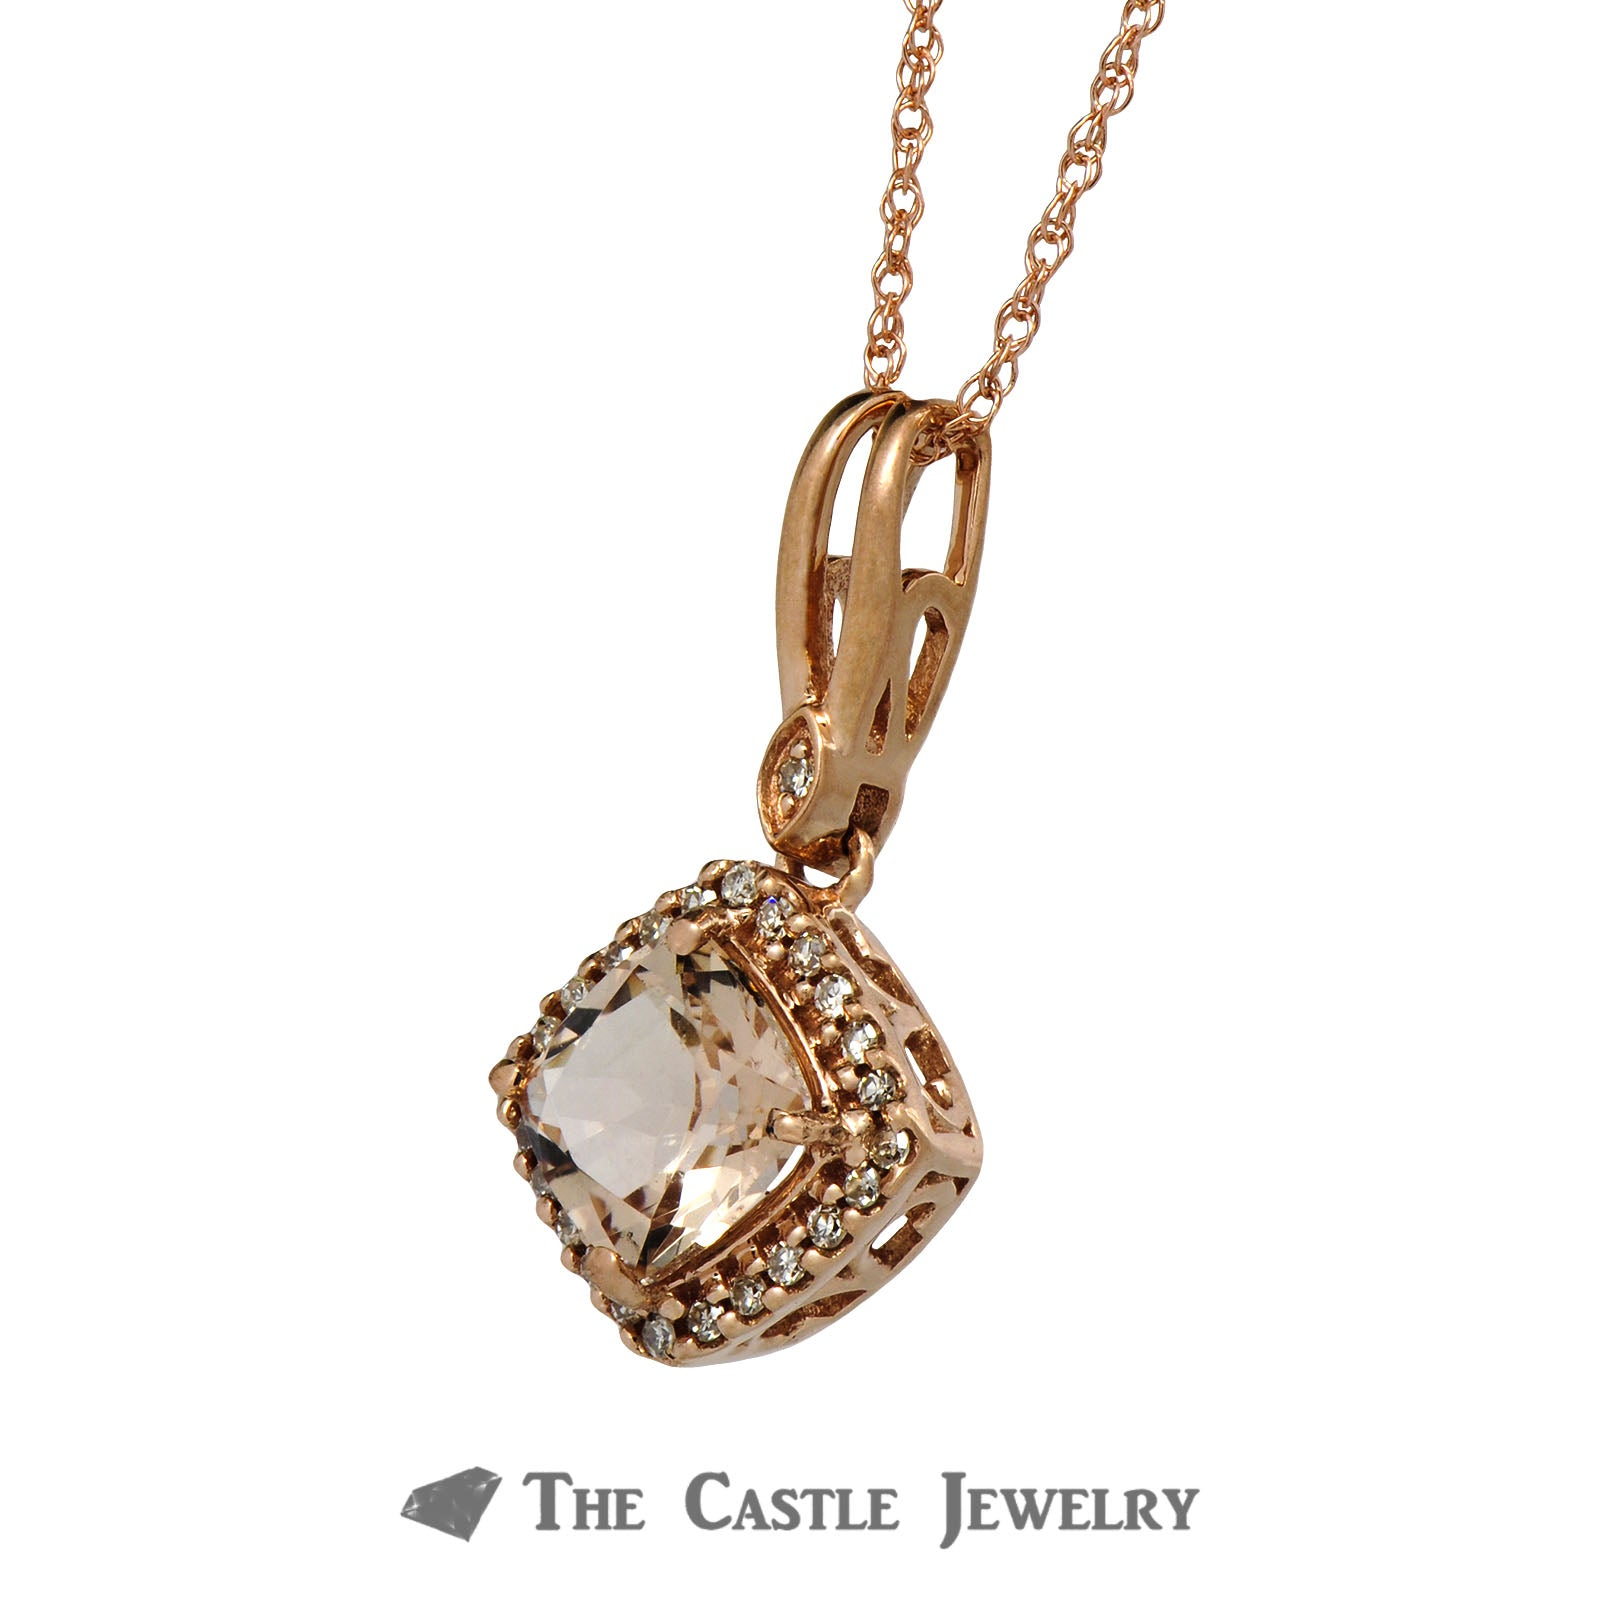 Cushion Cut Morganite Necklace with Diamond Bezel 14K Rose Gold-2